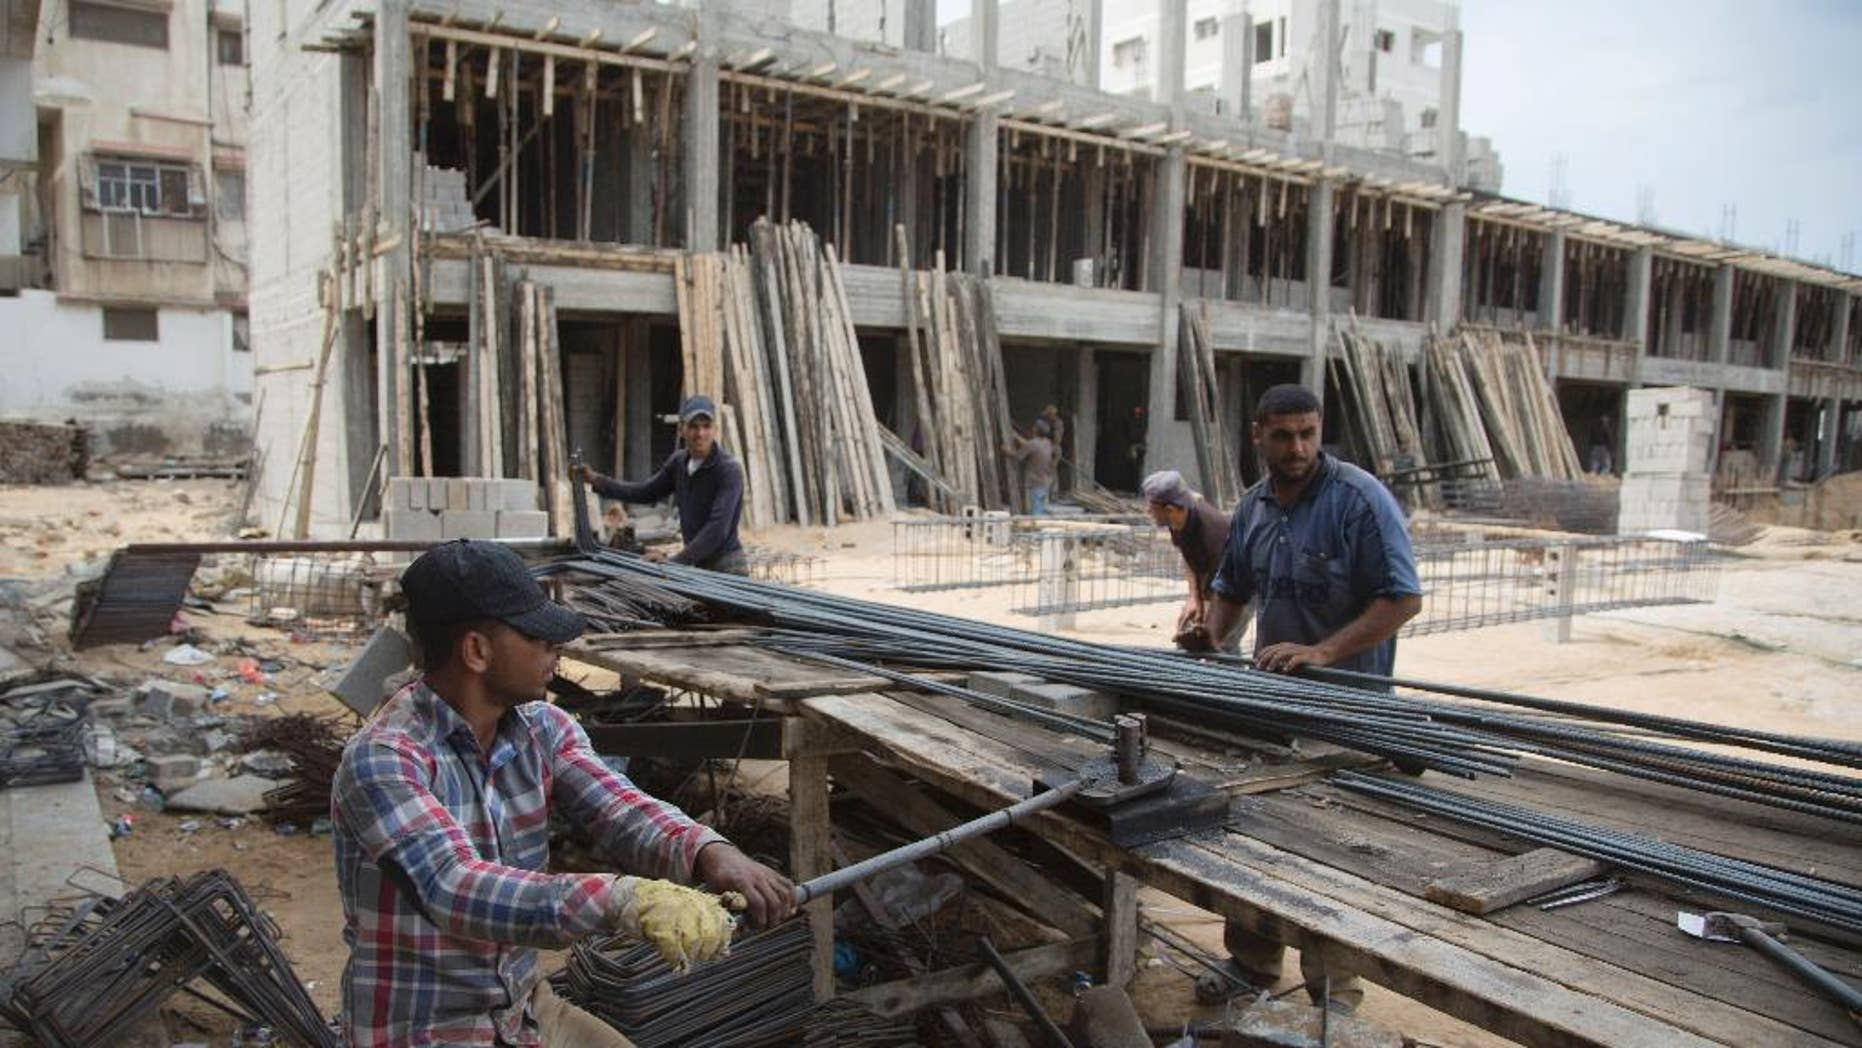 Palestinian construction laborers work on a U.N. school in the Gaza Strip, Saturday, Oct. 11, 2014. After the Gaza war, the U.N. brokered a deal with Israel and the Palestinian government under which Israel is to allow imports of construction materials for the private sector. On the Gaza side, the shipments are to be tracked by U.N. and Palestinian officials. (AP Photo/Khalil Hamra)